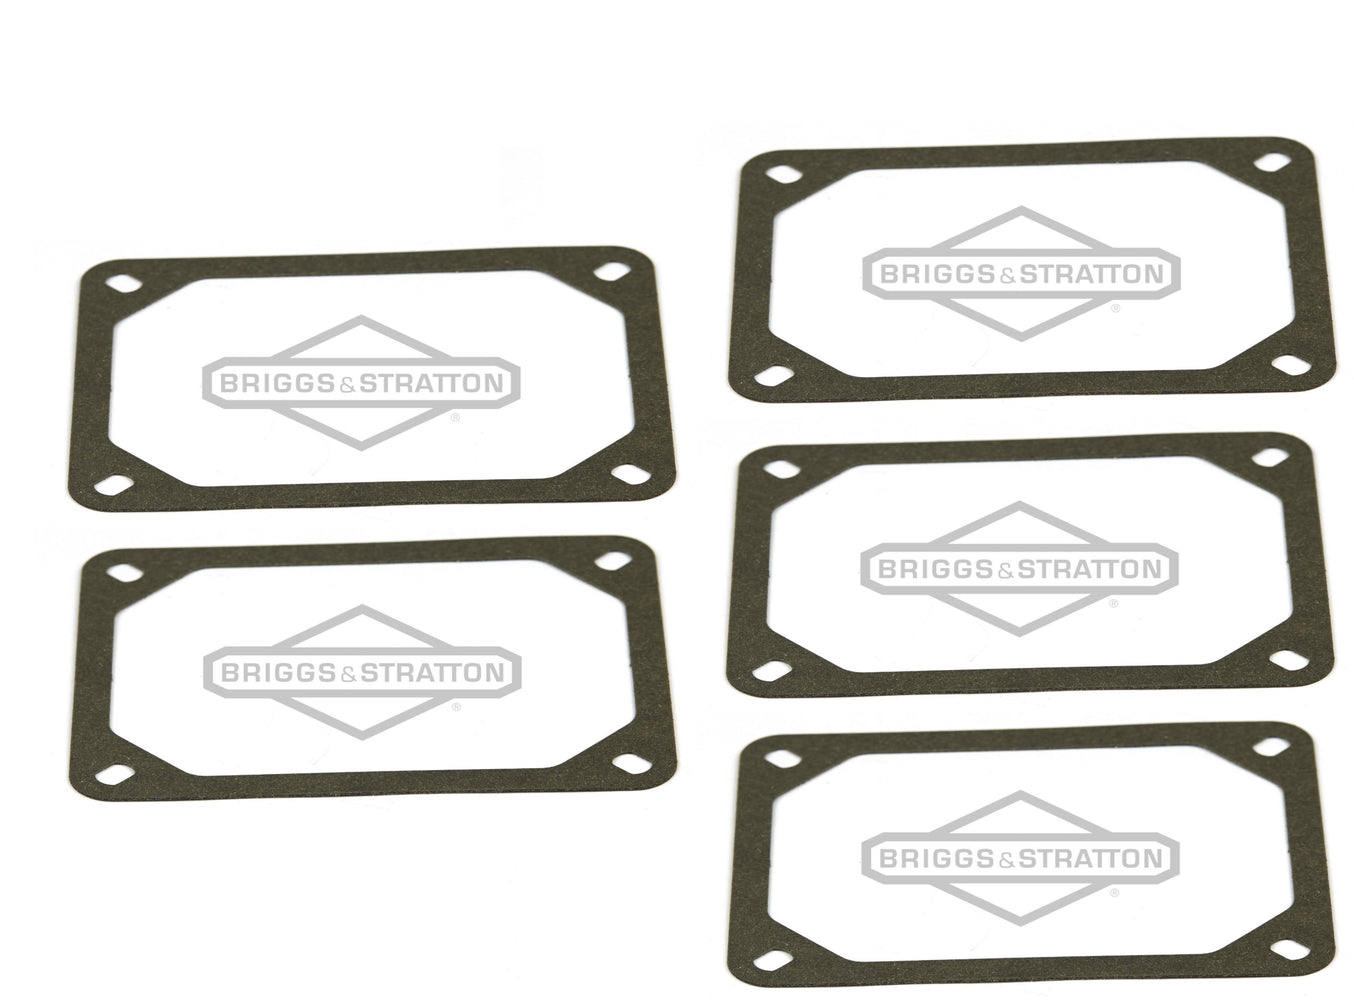 5 Pack Genuine Briggs & Stratton 690971 Rocker Cover Gasket Replaces 273486 OEM